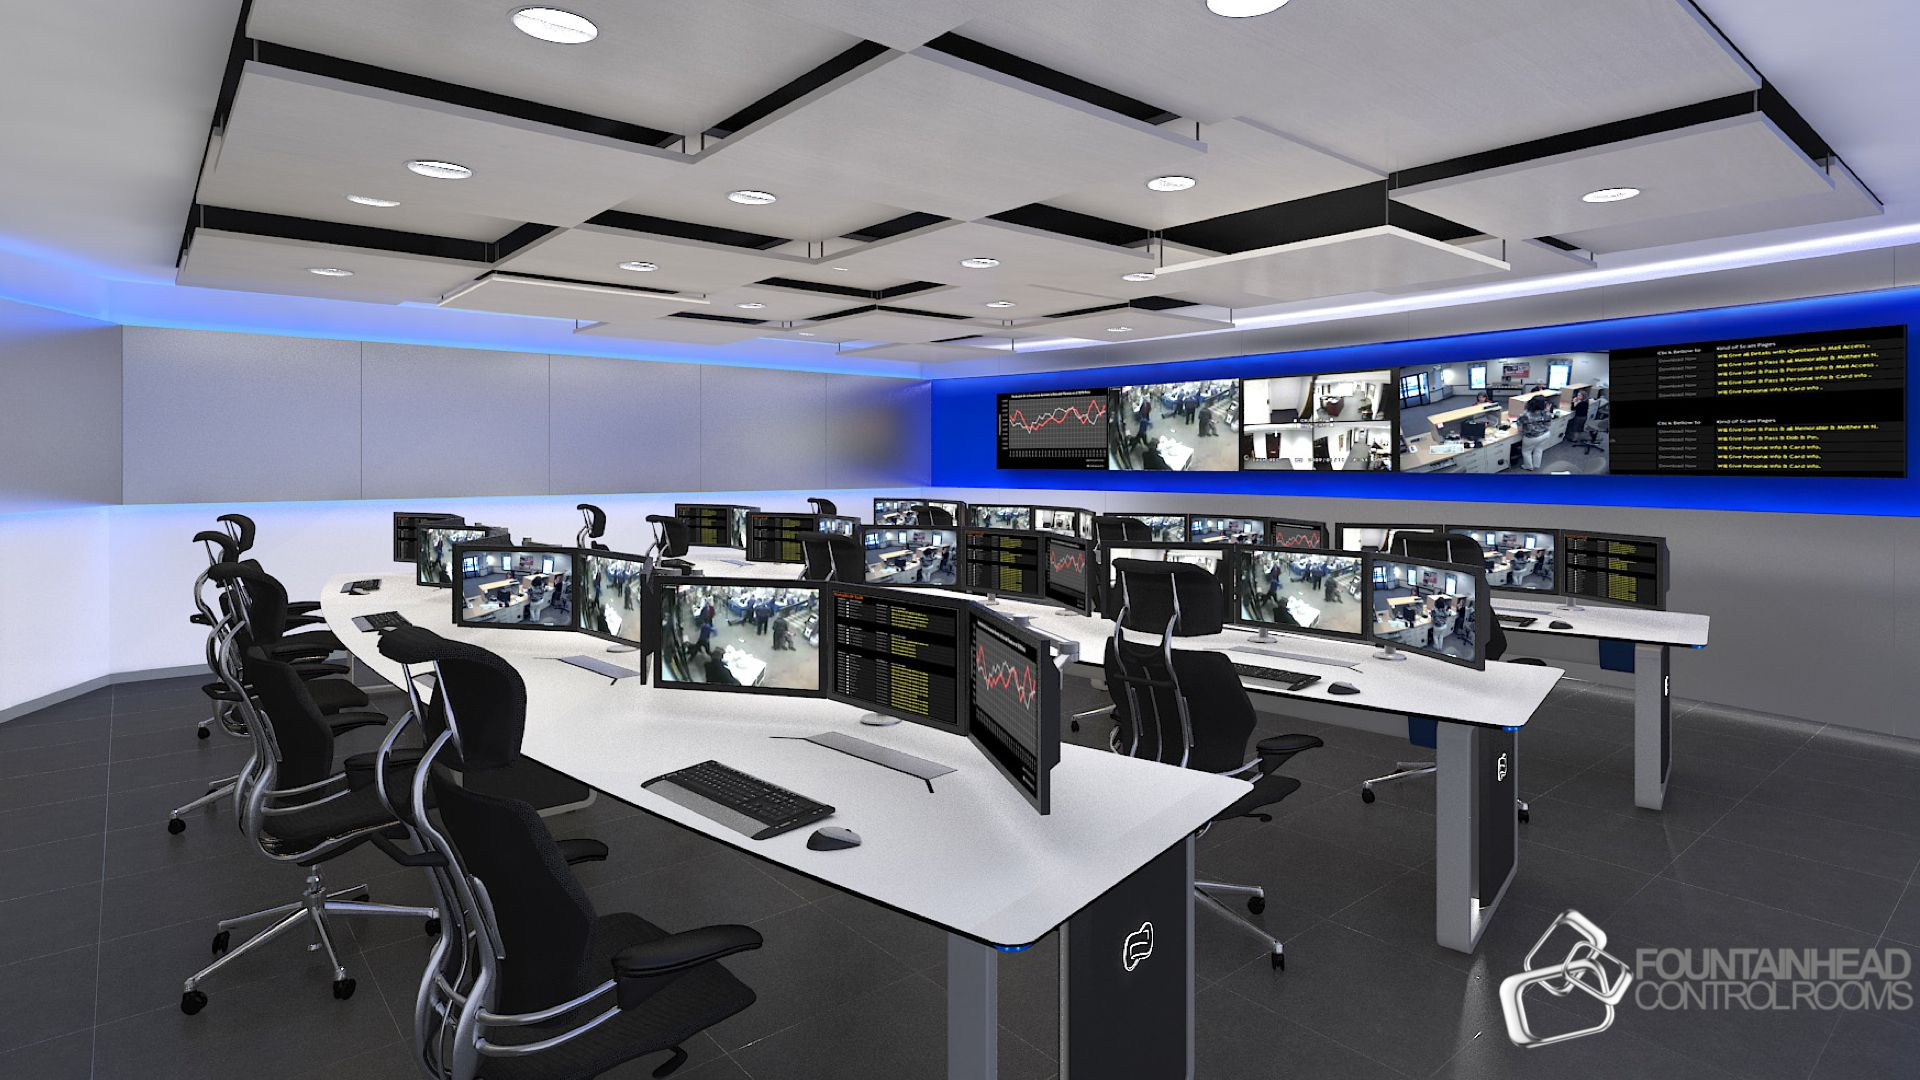 Command Center Furniture Design noc furniture design solution. noc control room design. 24/7/365